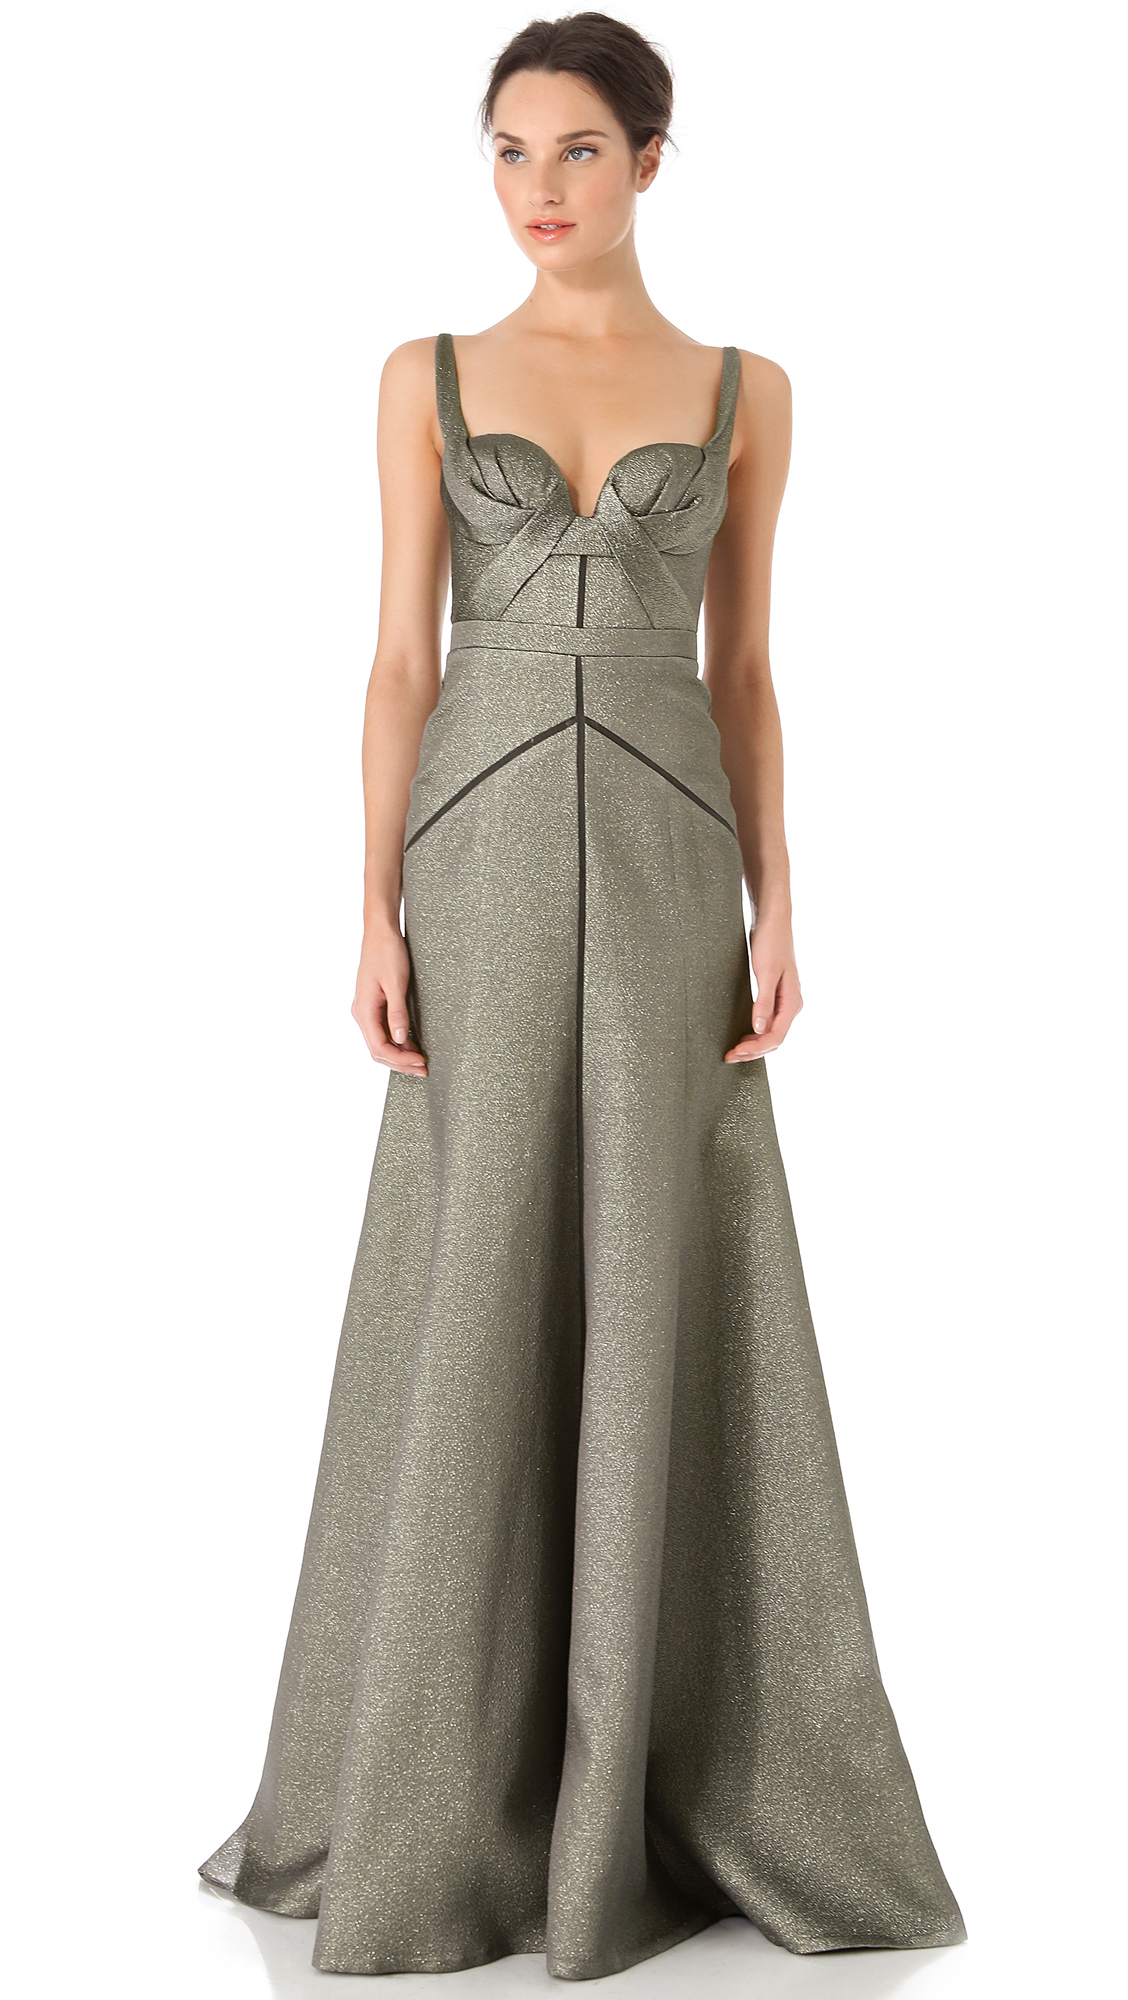 Lyst - J. Mendel Full Skirt Bustier Gown in Gray